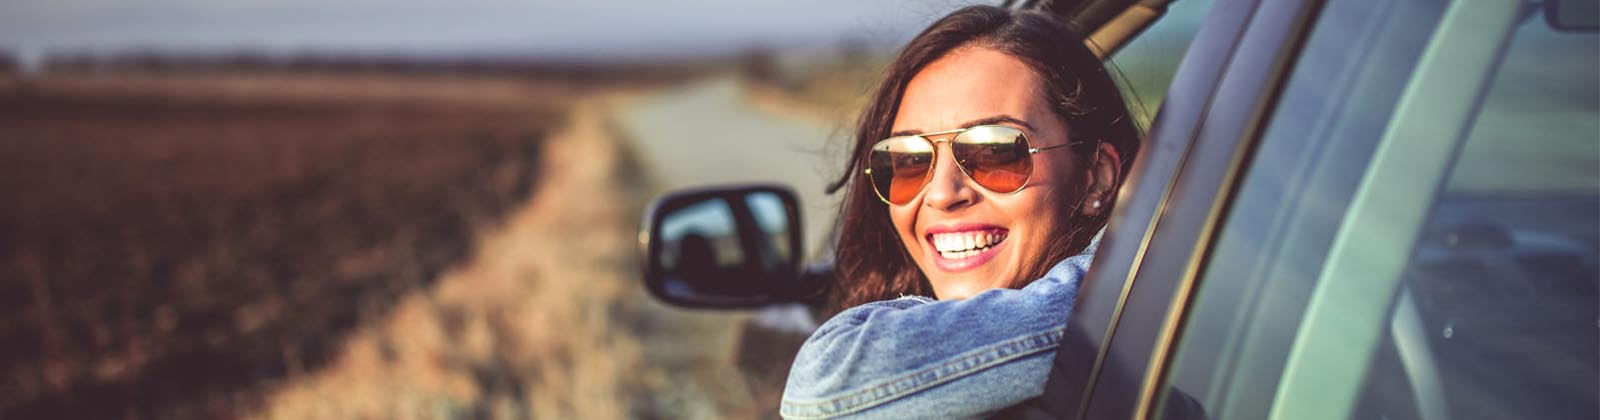 woman looking out her car window smiling